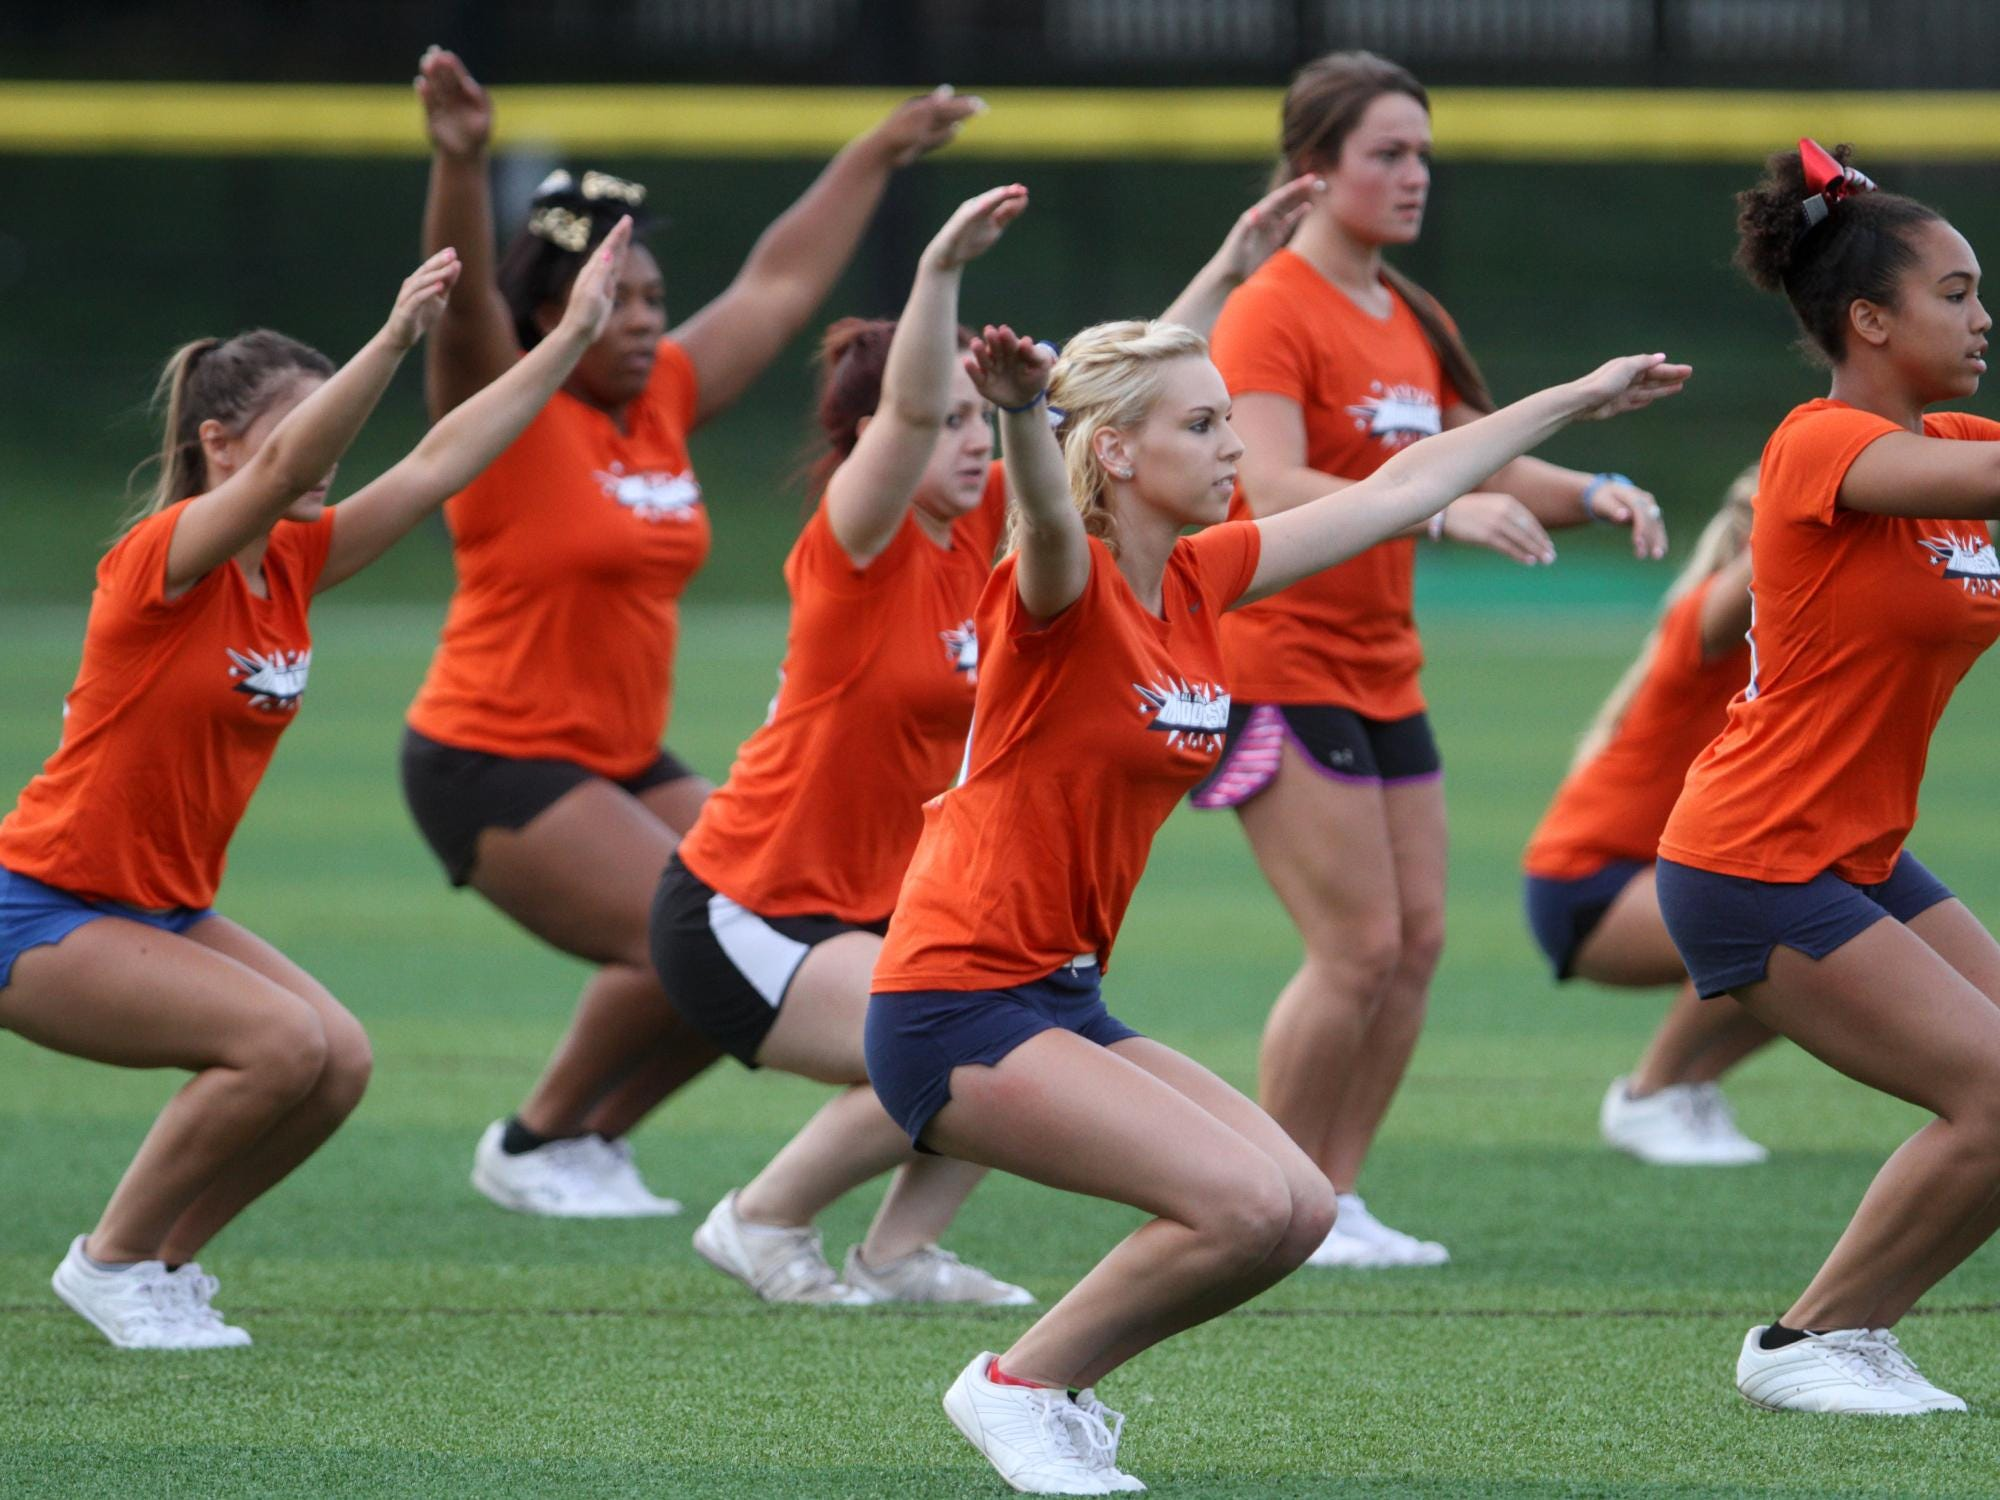 Middlesex County cheerleaders practice for the Snapple Bowl, Monday, July 6, 2015, at Colonia High School in Woodbridge, NJ.